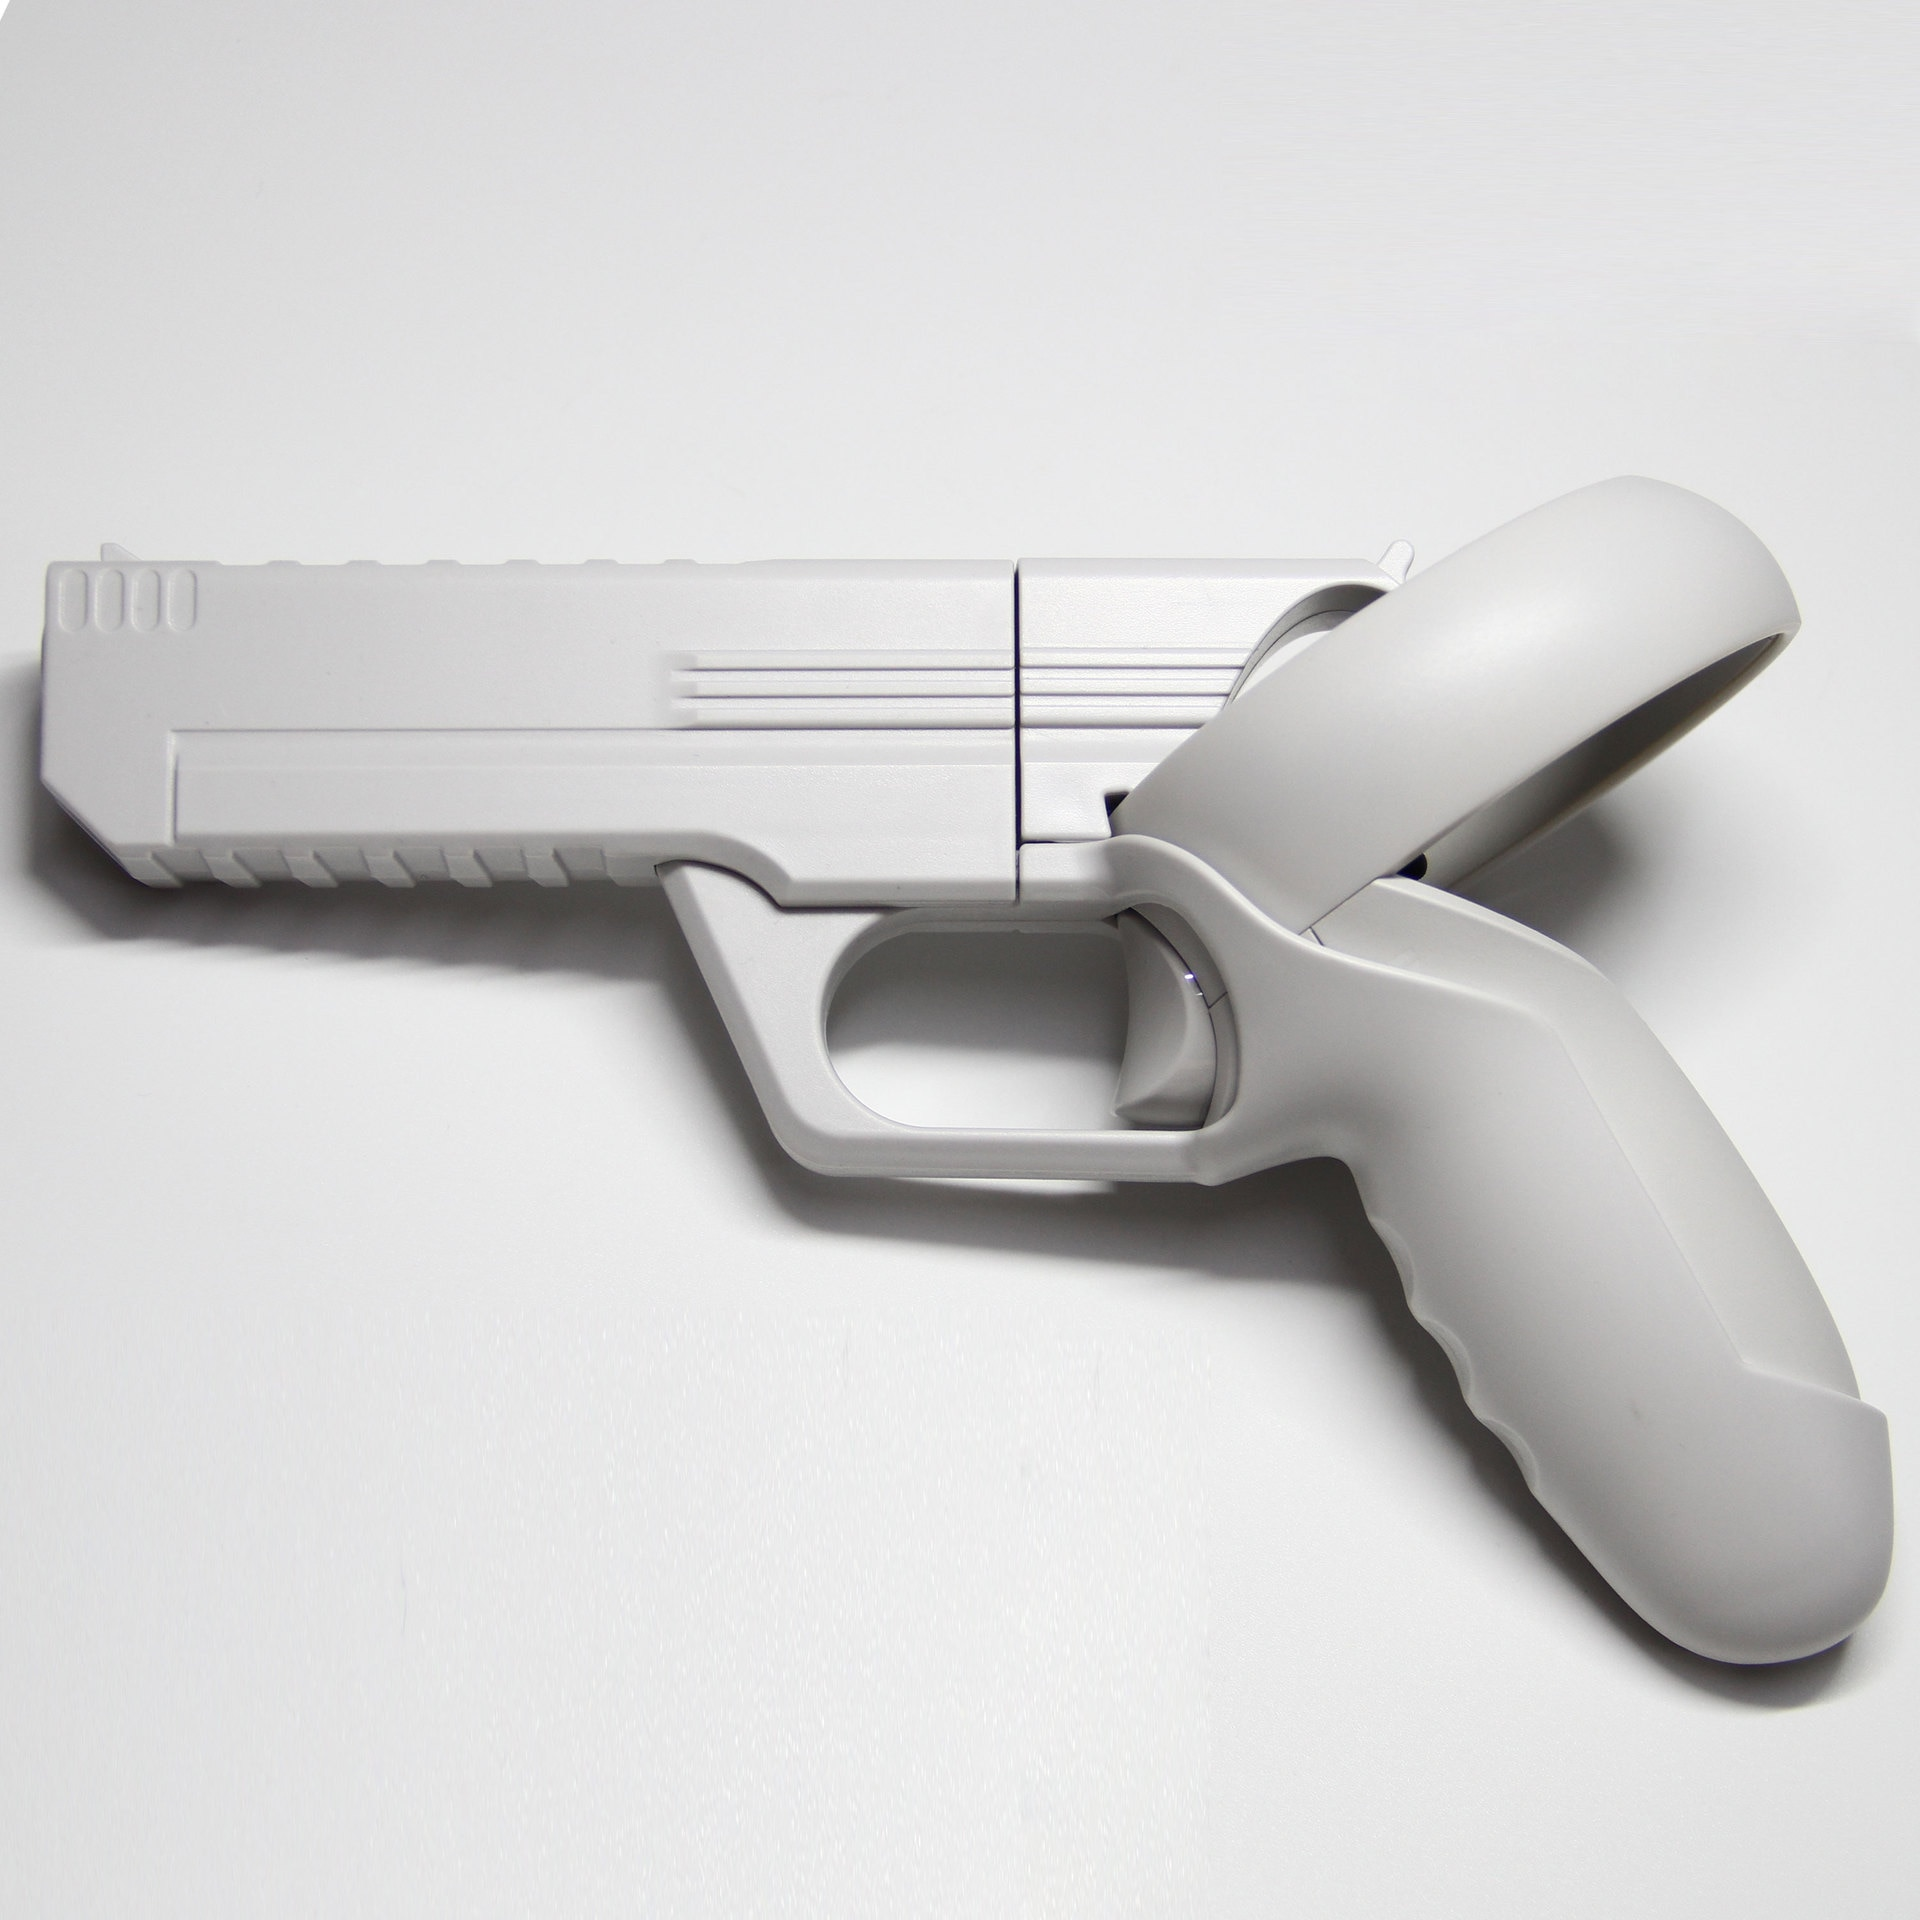 VR Game Gun for Oculus Quest 2 Controllers Pistol Case, Enhanced FPS Gaming Experience -Compatible with Pistol Whip VR Game enlarge